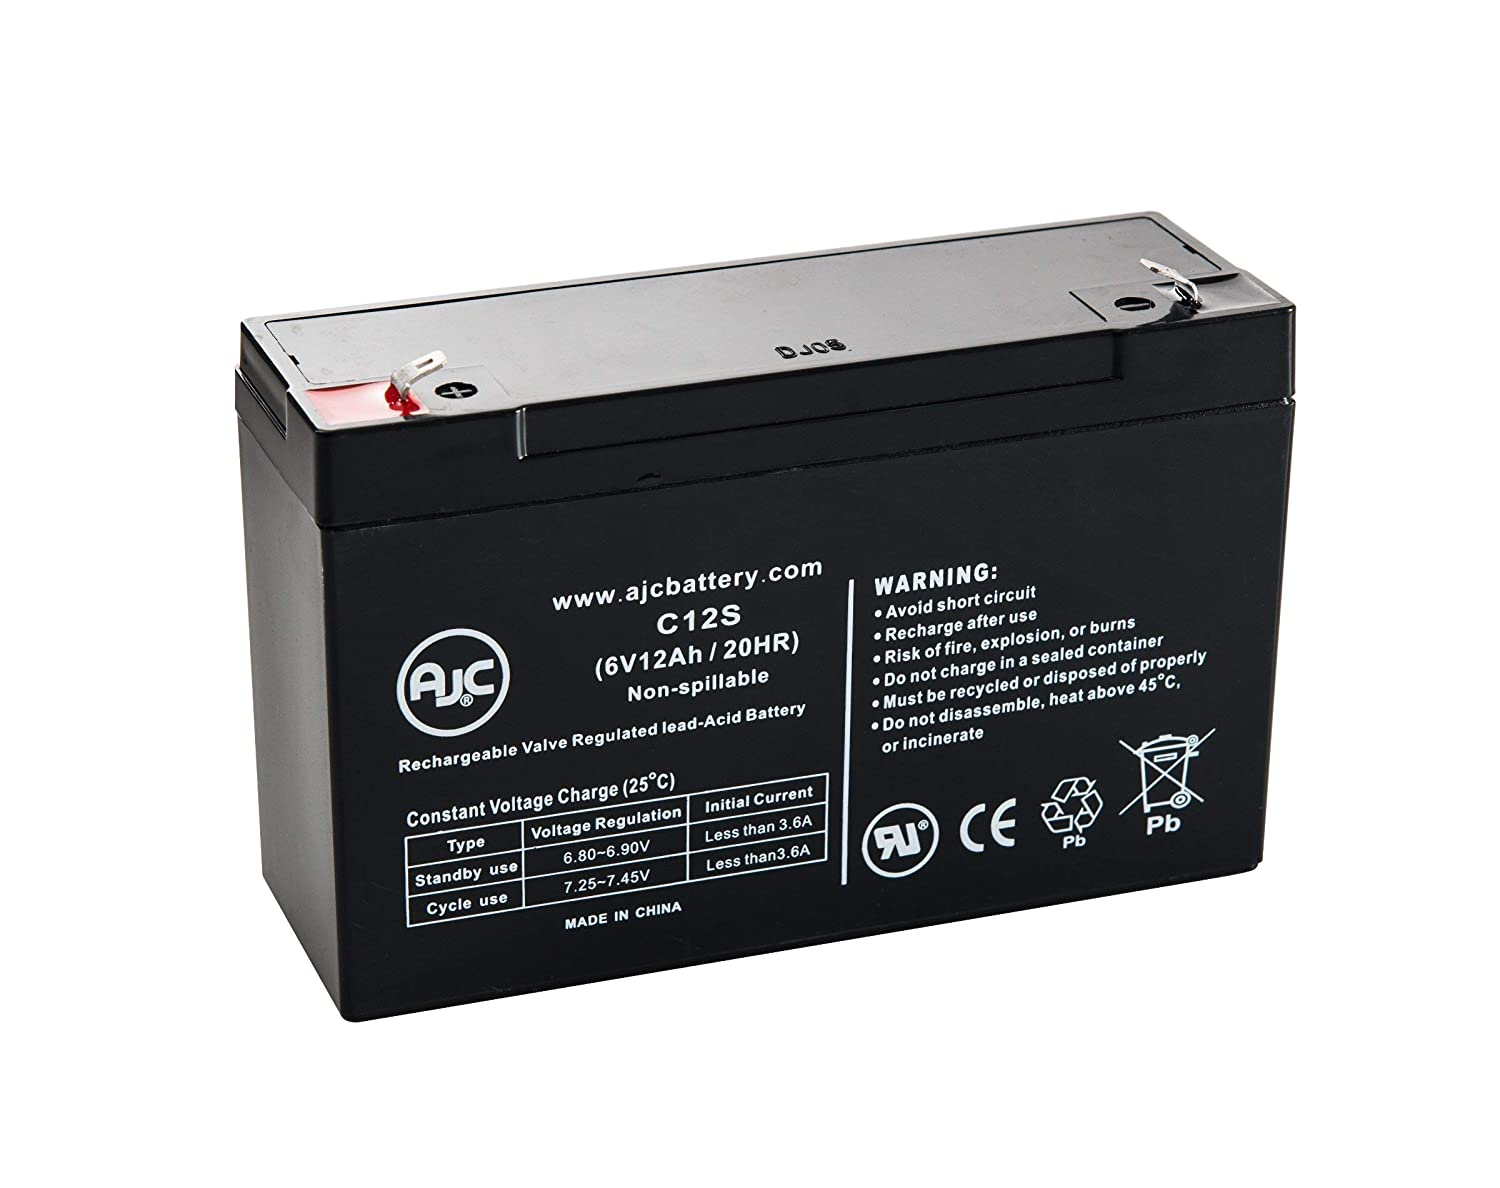 Sure-Lites 12V-UMB-2 6V 12Ah Emergency Light Battery - This is an AJC Brand Replacement AJC Battery